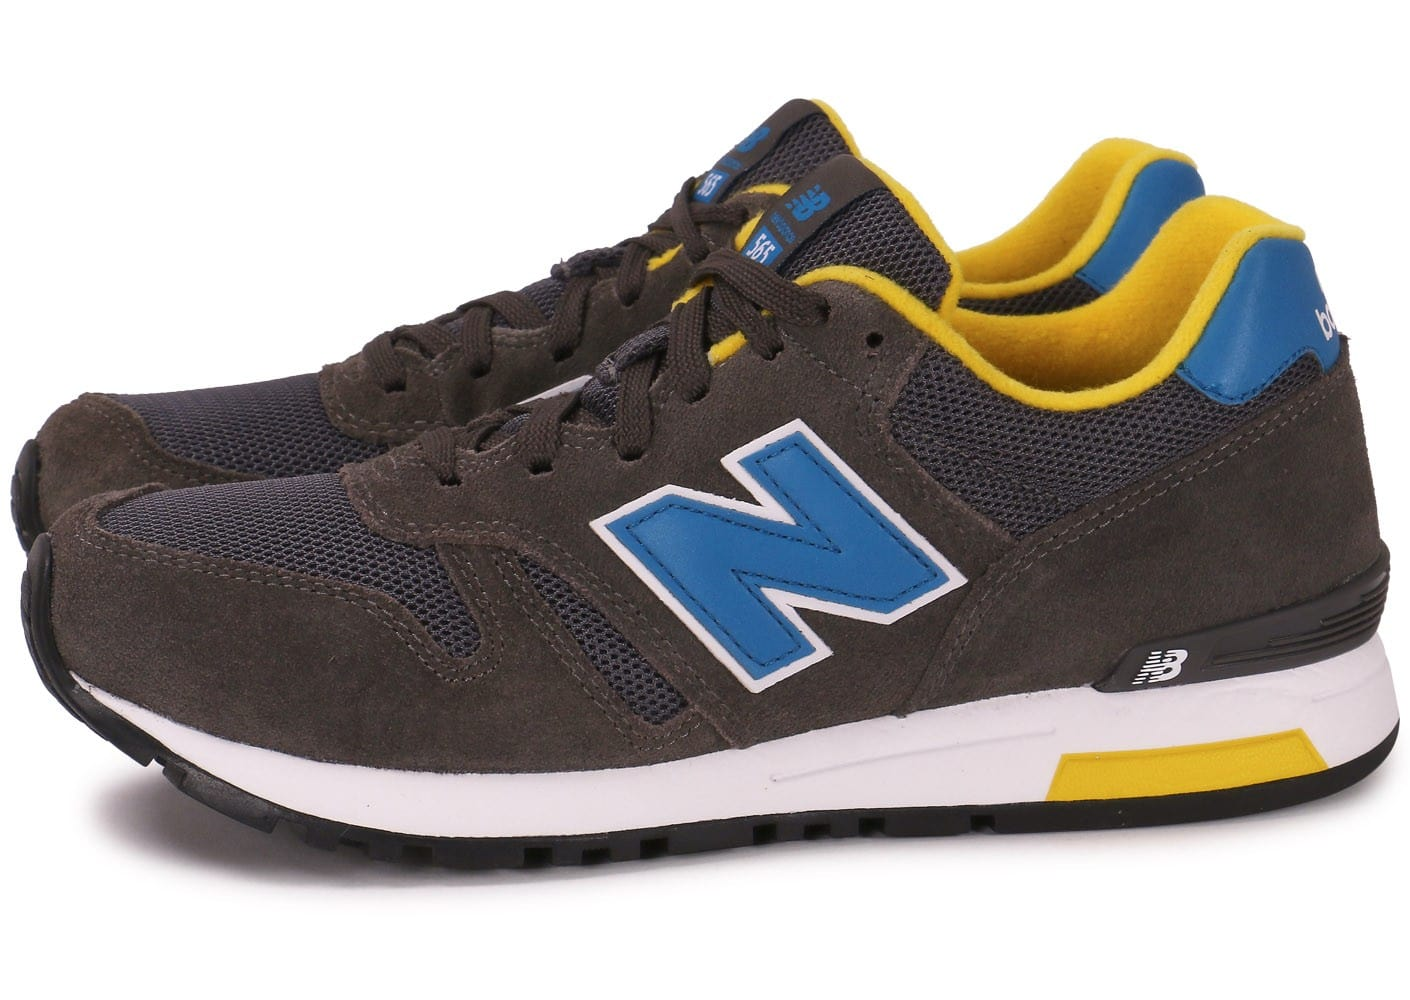 new balance ml565 snr grise chaussures homme chausport. Black Bedroom Furniture Sets. Home Design Ideas